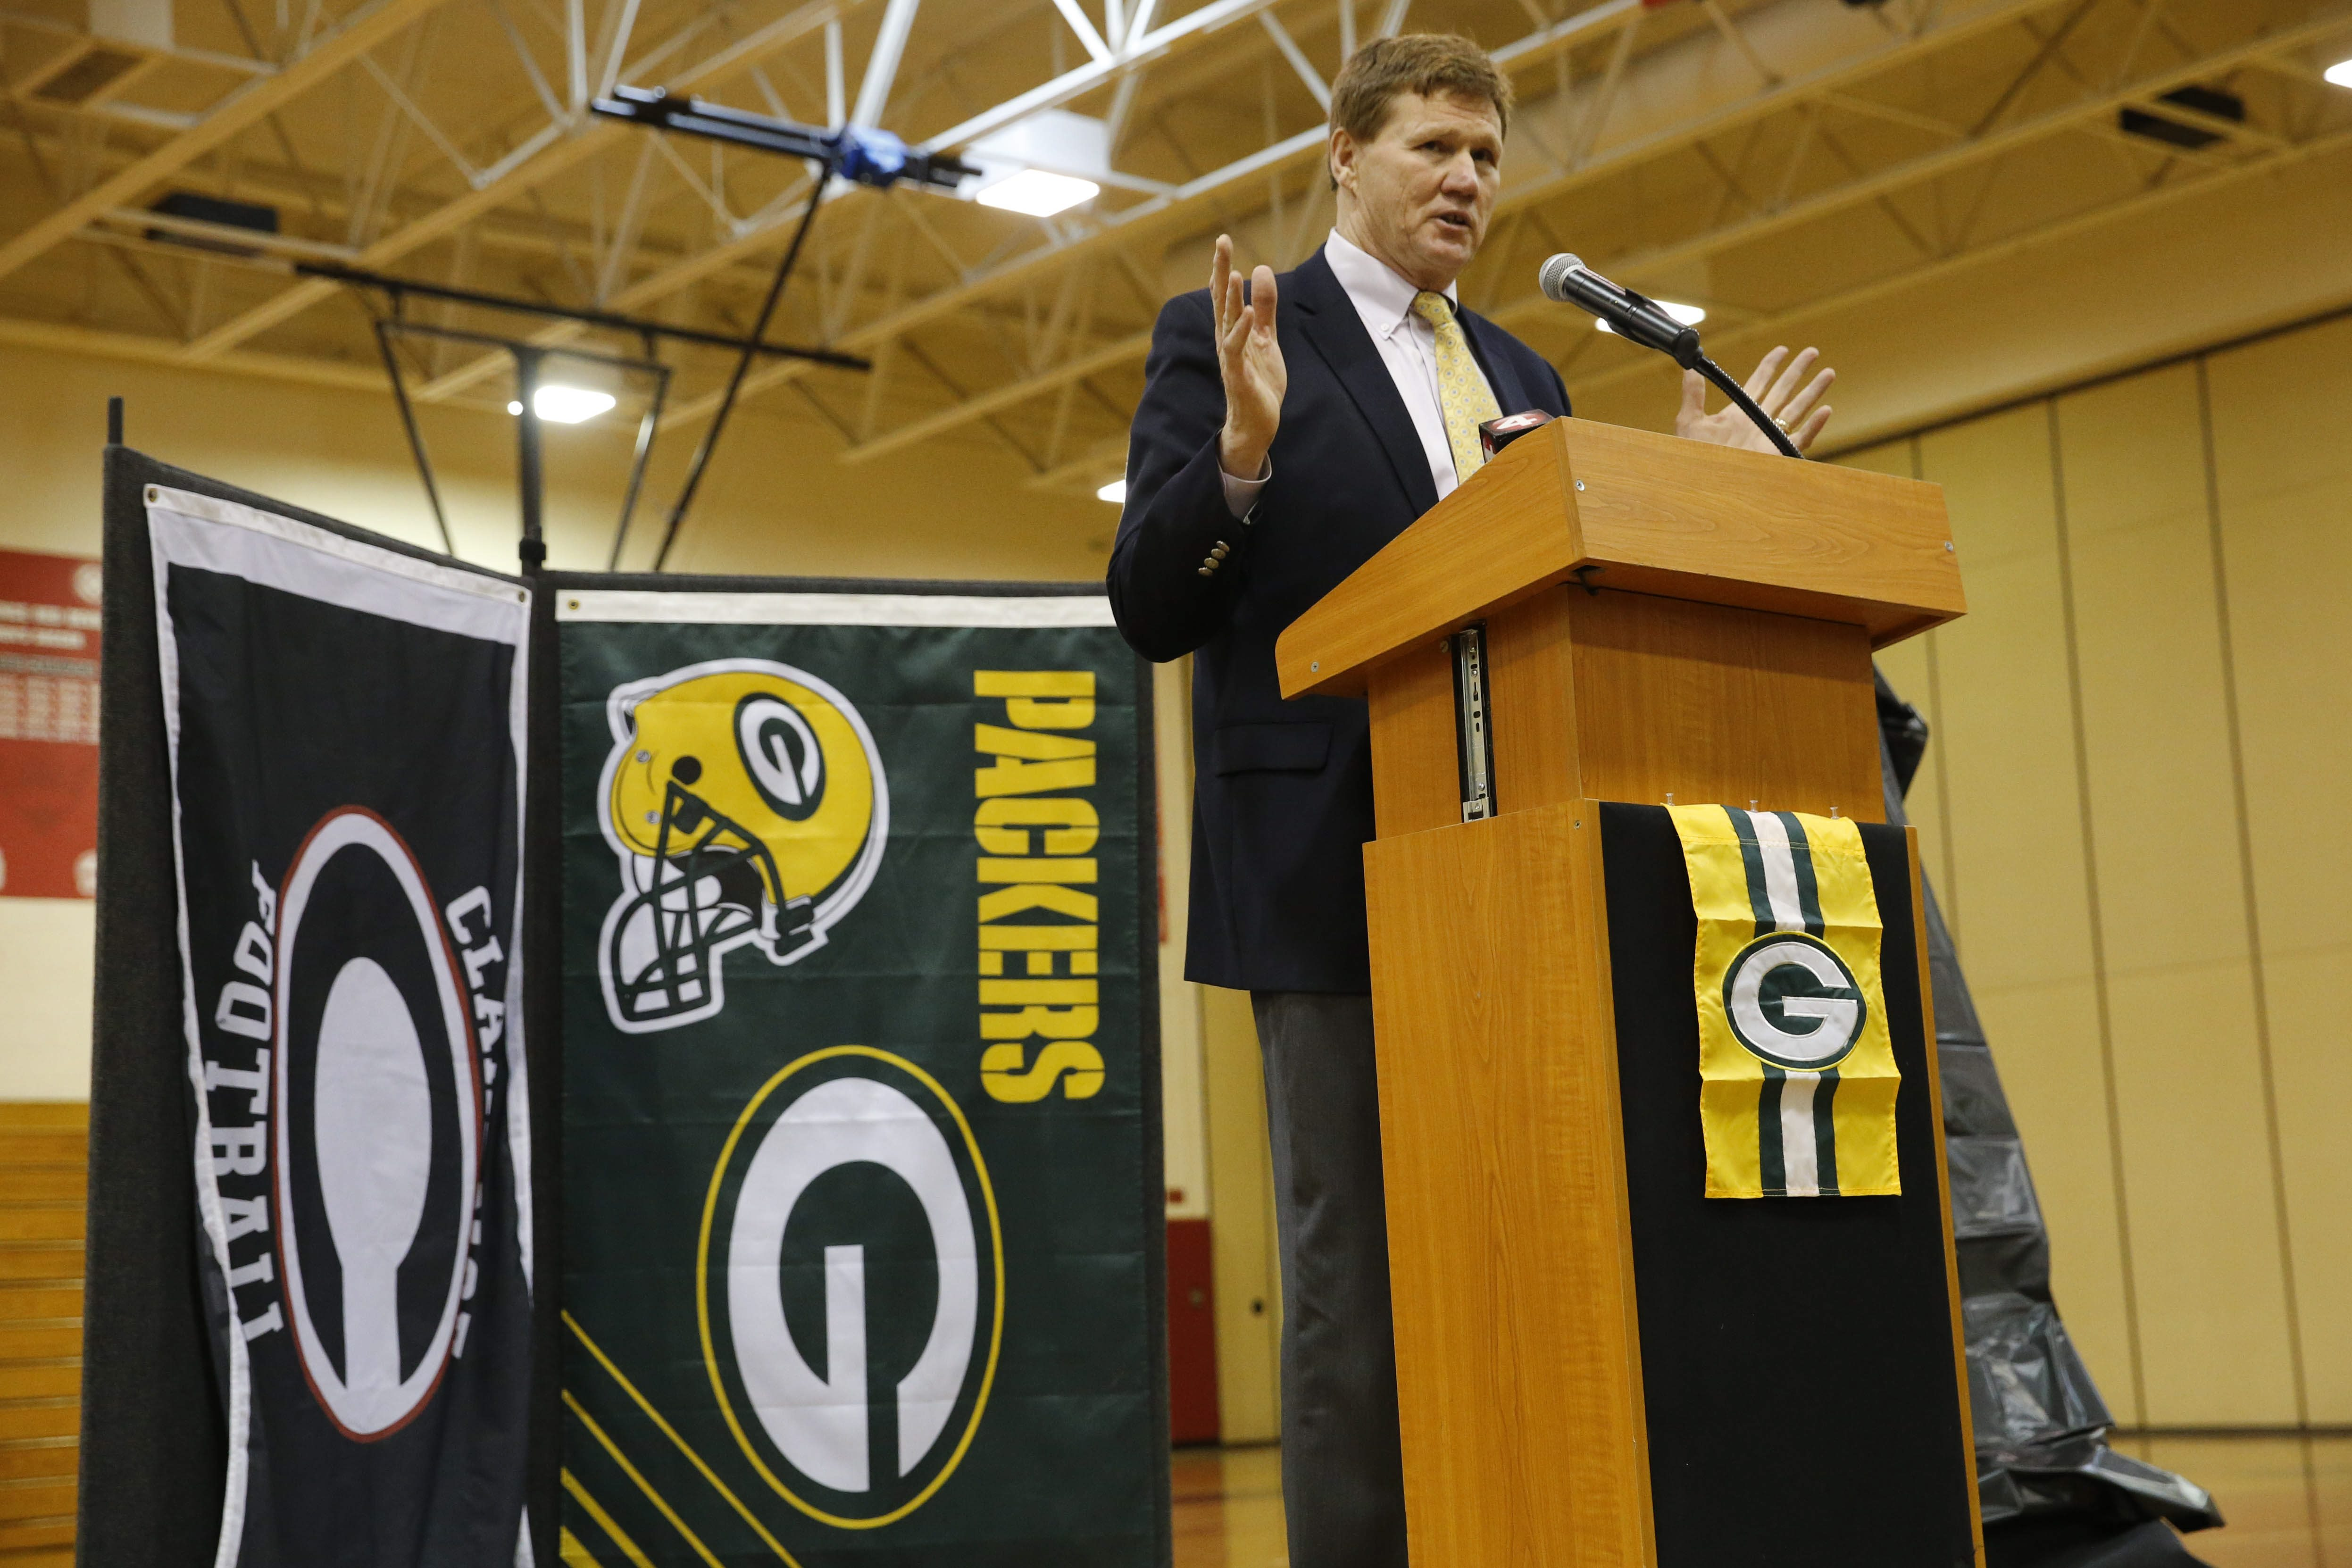 Green Bay Packers President and CEO Mark Murphy, a 1973 Clarence High School graduate, addresses student athletes and community members in the Clarence High School gymnasium, Monday, Feb. 29, 2016.  (Derek Gee/Buffalo News)